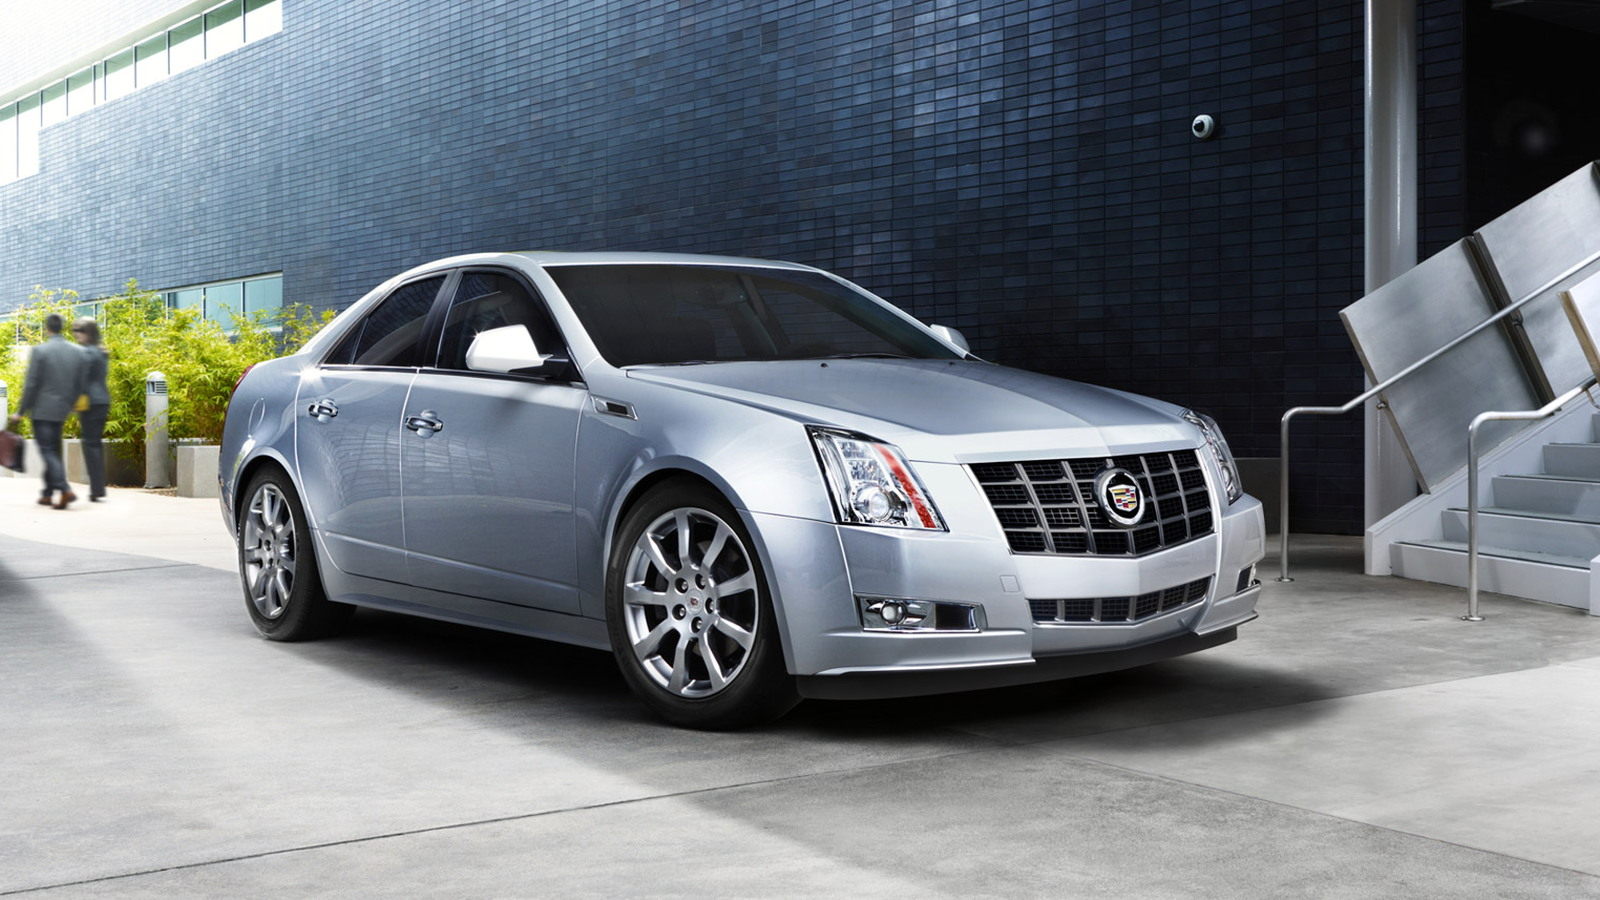 2012 Cadillac CTS Touring Edition